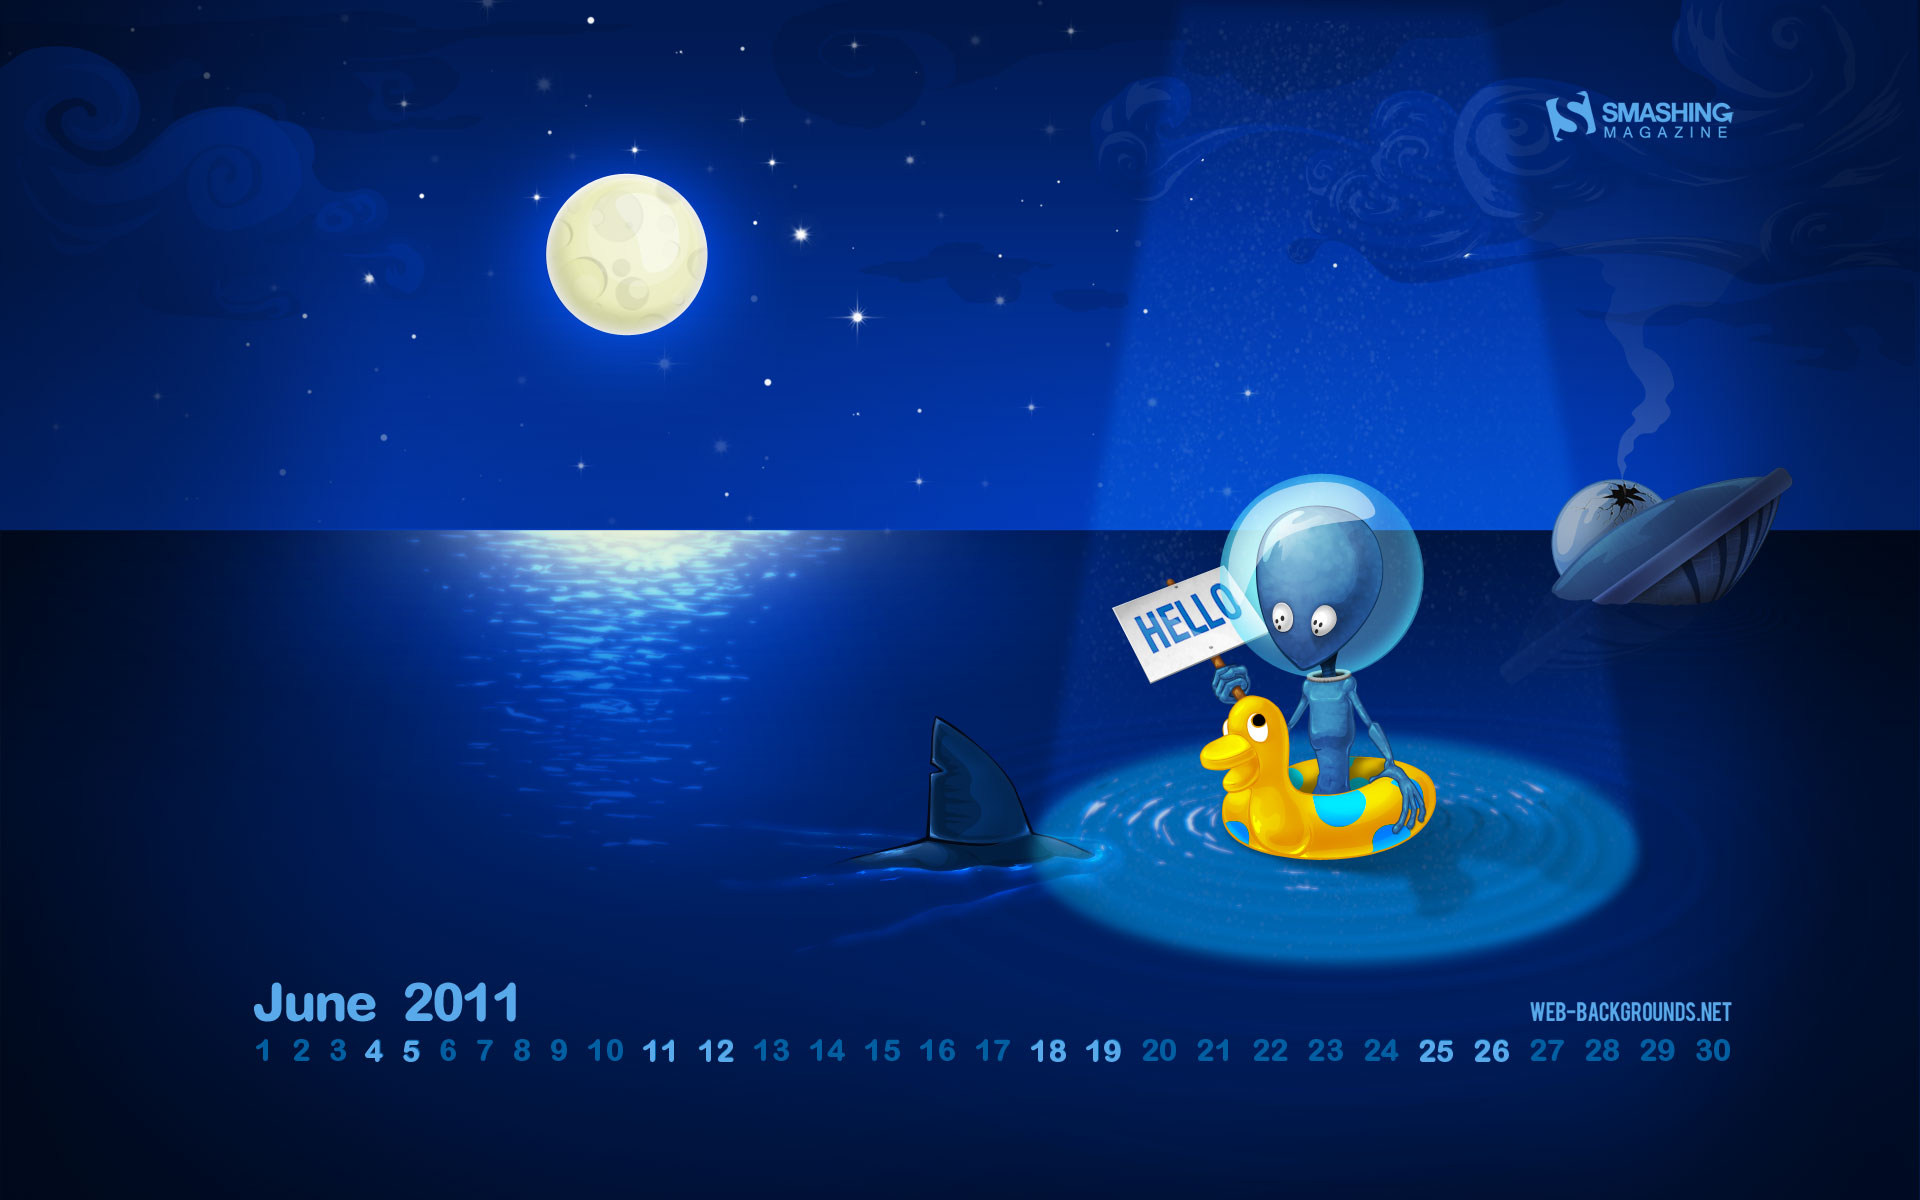 In January Calendar Wallpaper 29710